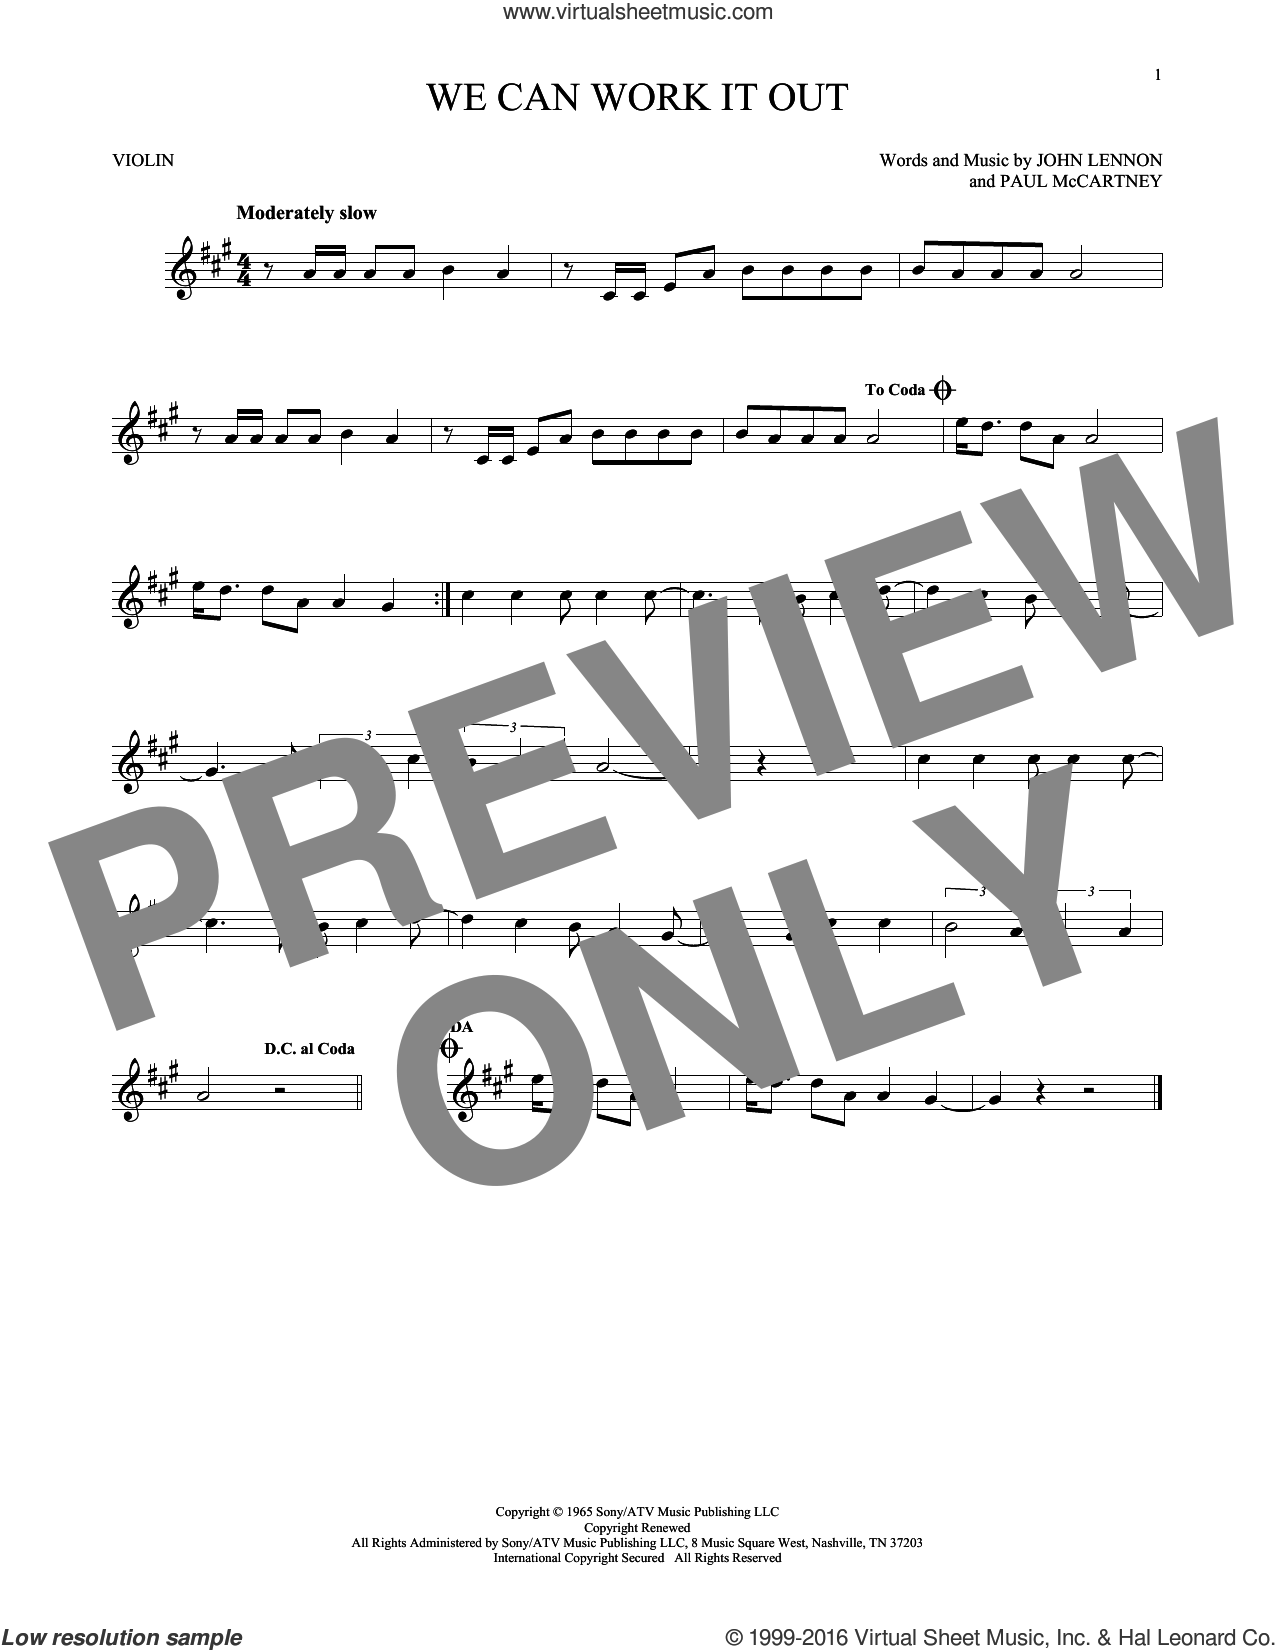 We Can Work It Out sheet music for violin solo by The Beatles, John Lennon and Paul McCartney, intermediate skill level